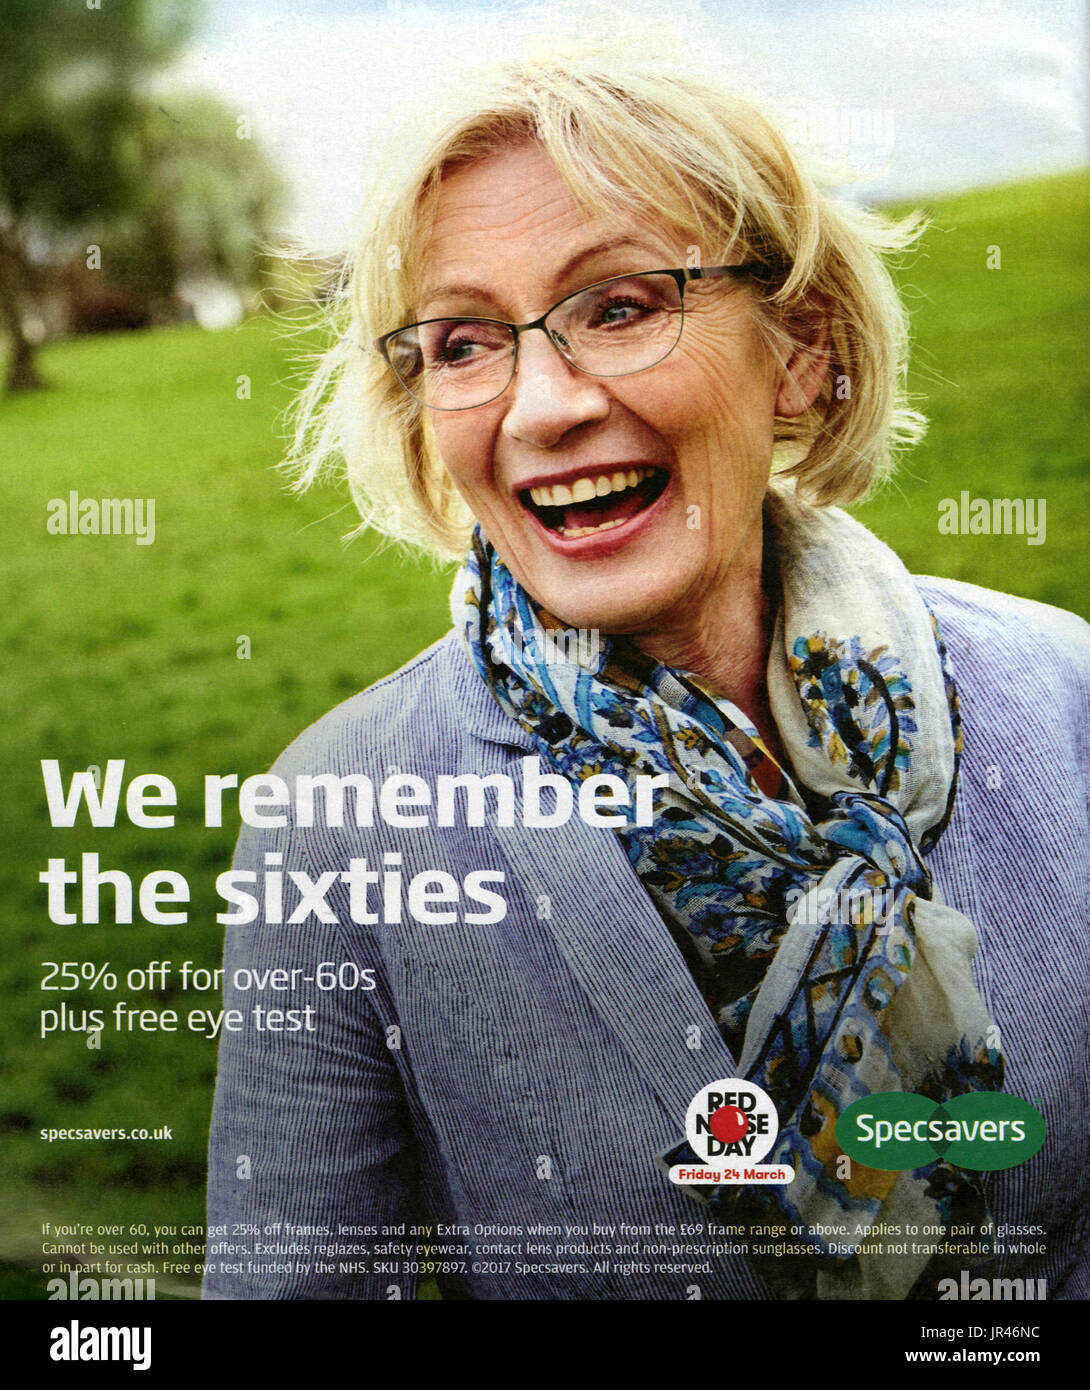 s uk specsavers magazine advert stock photo royalty  2010s uk specsavers magazine advert